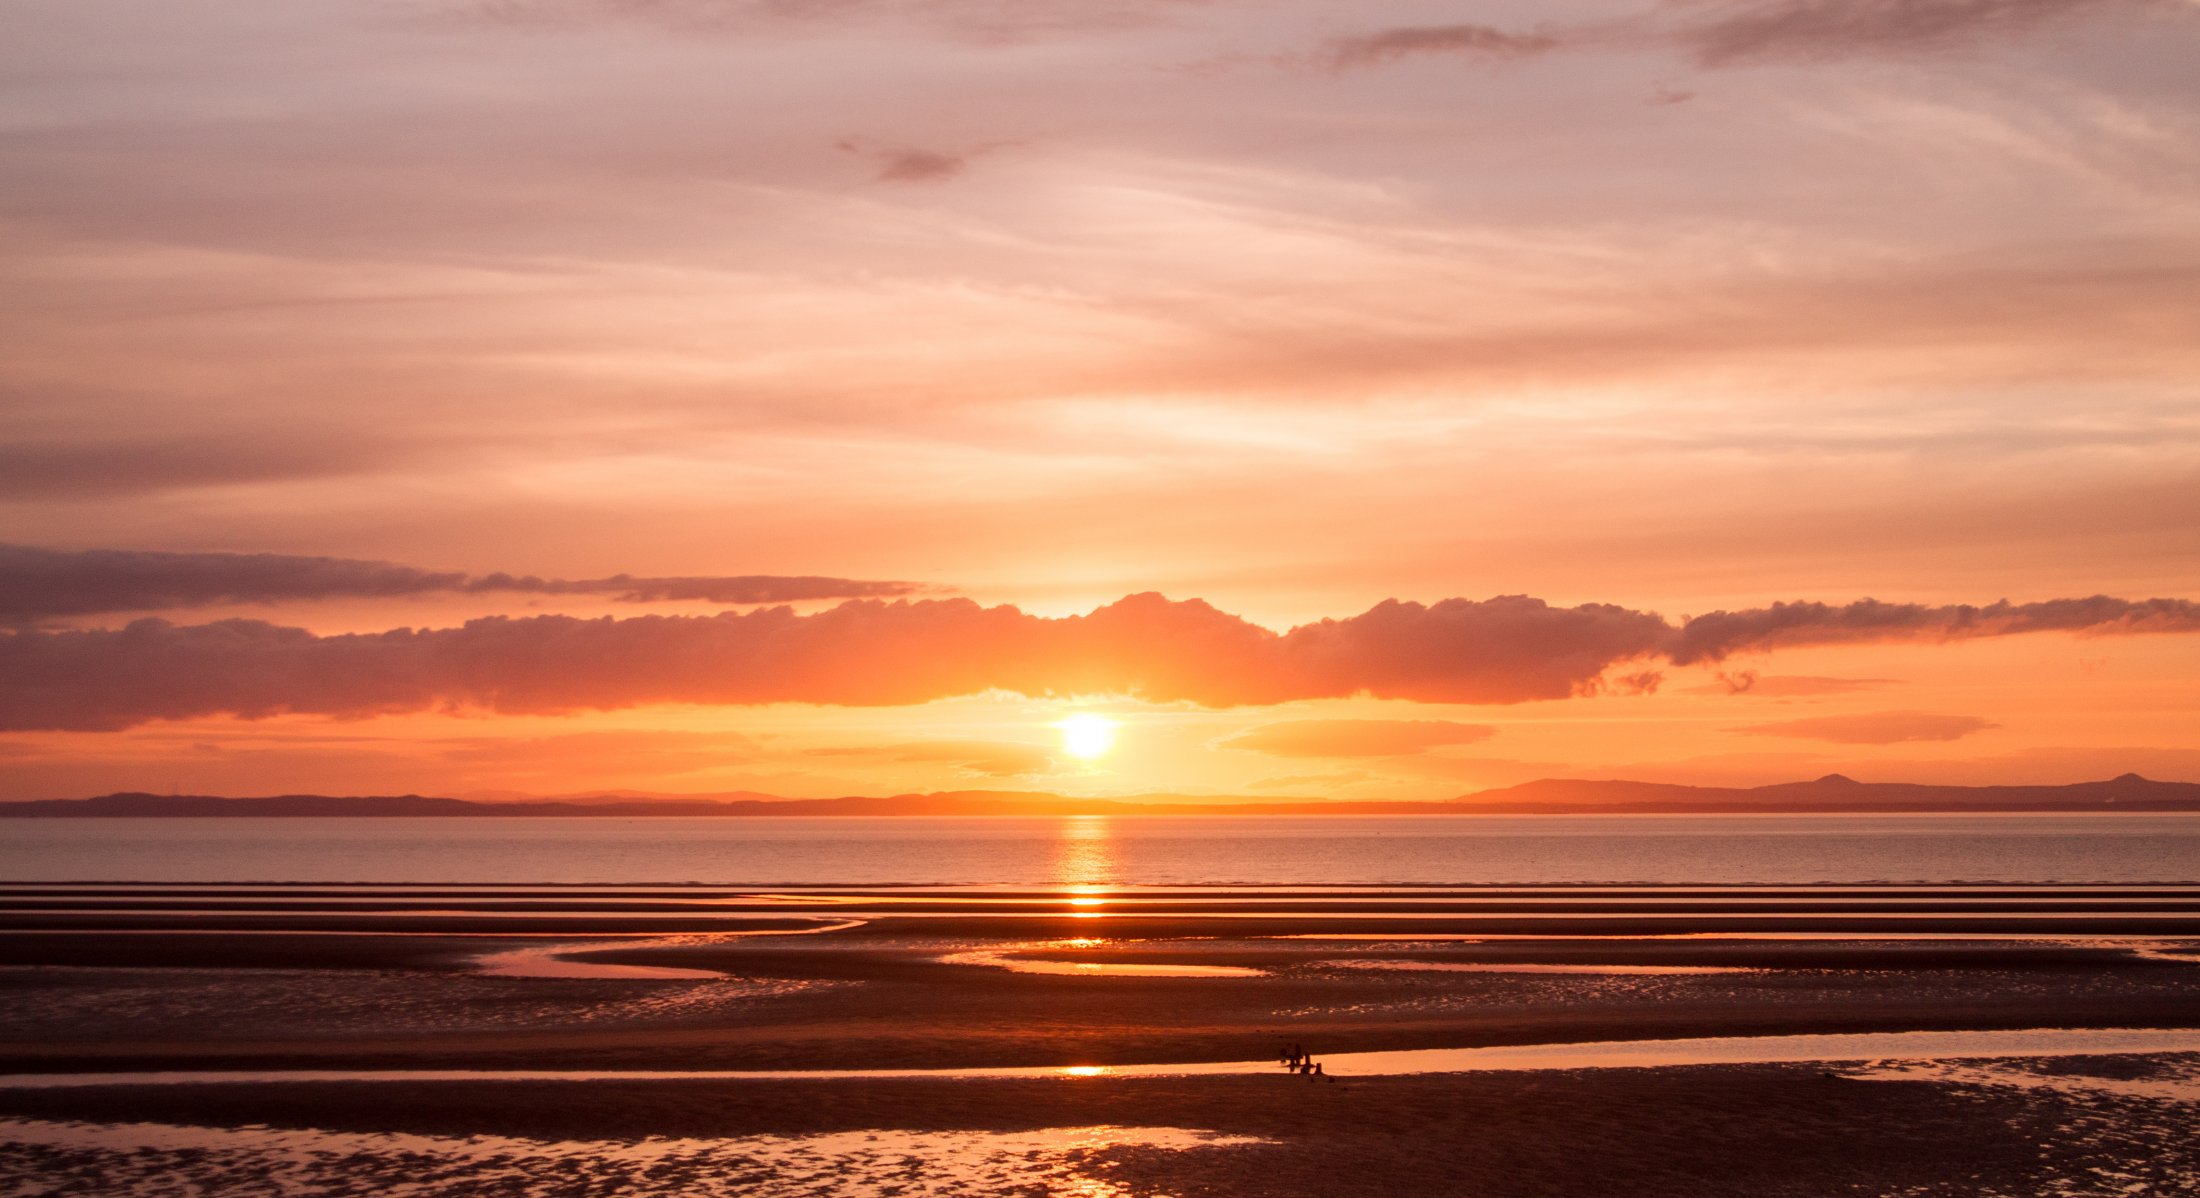 Sunset at Aberlady